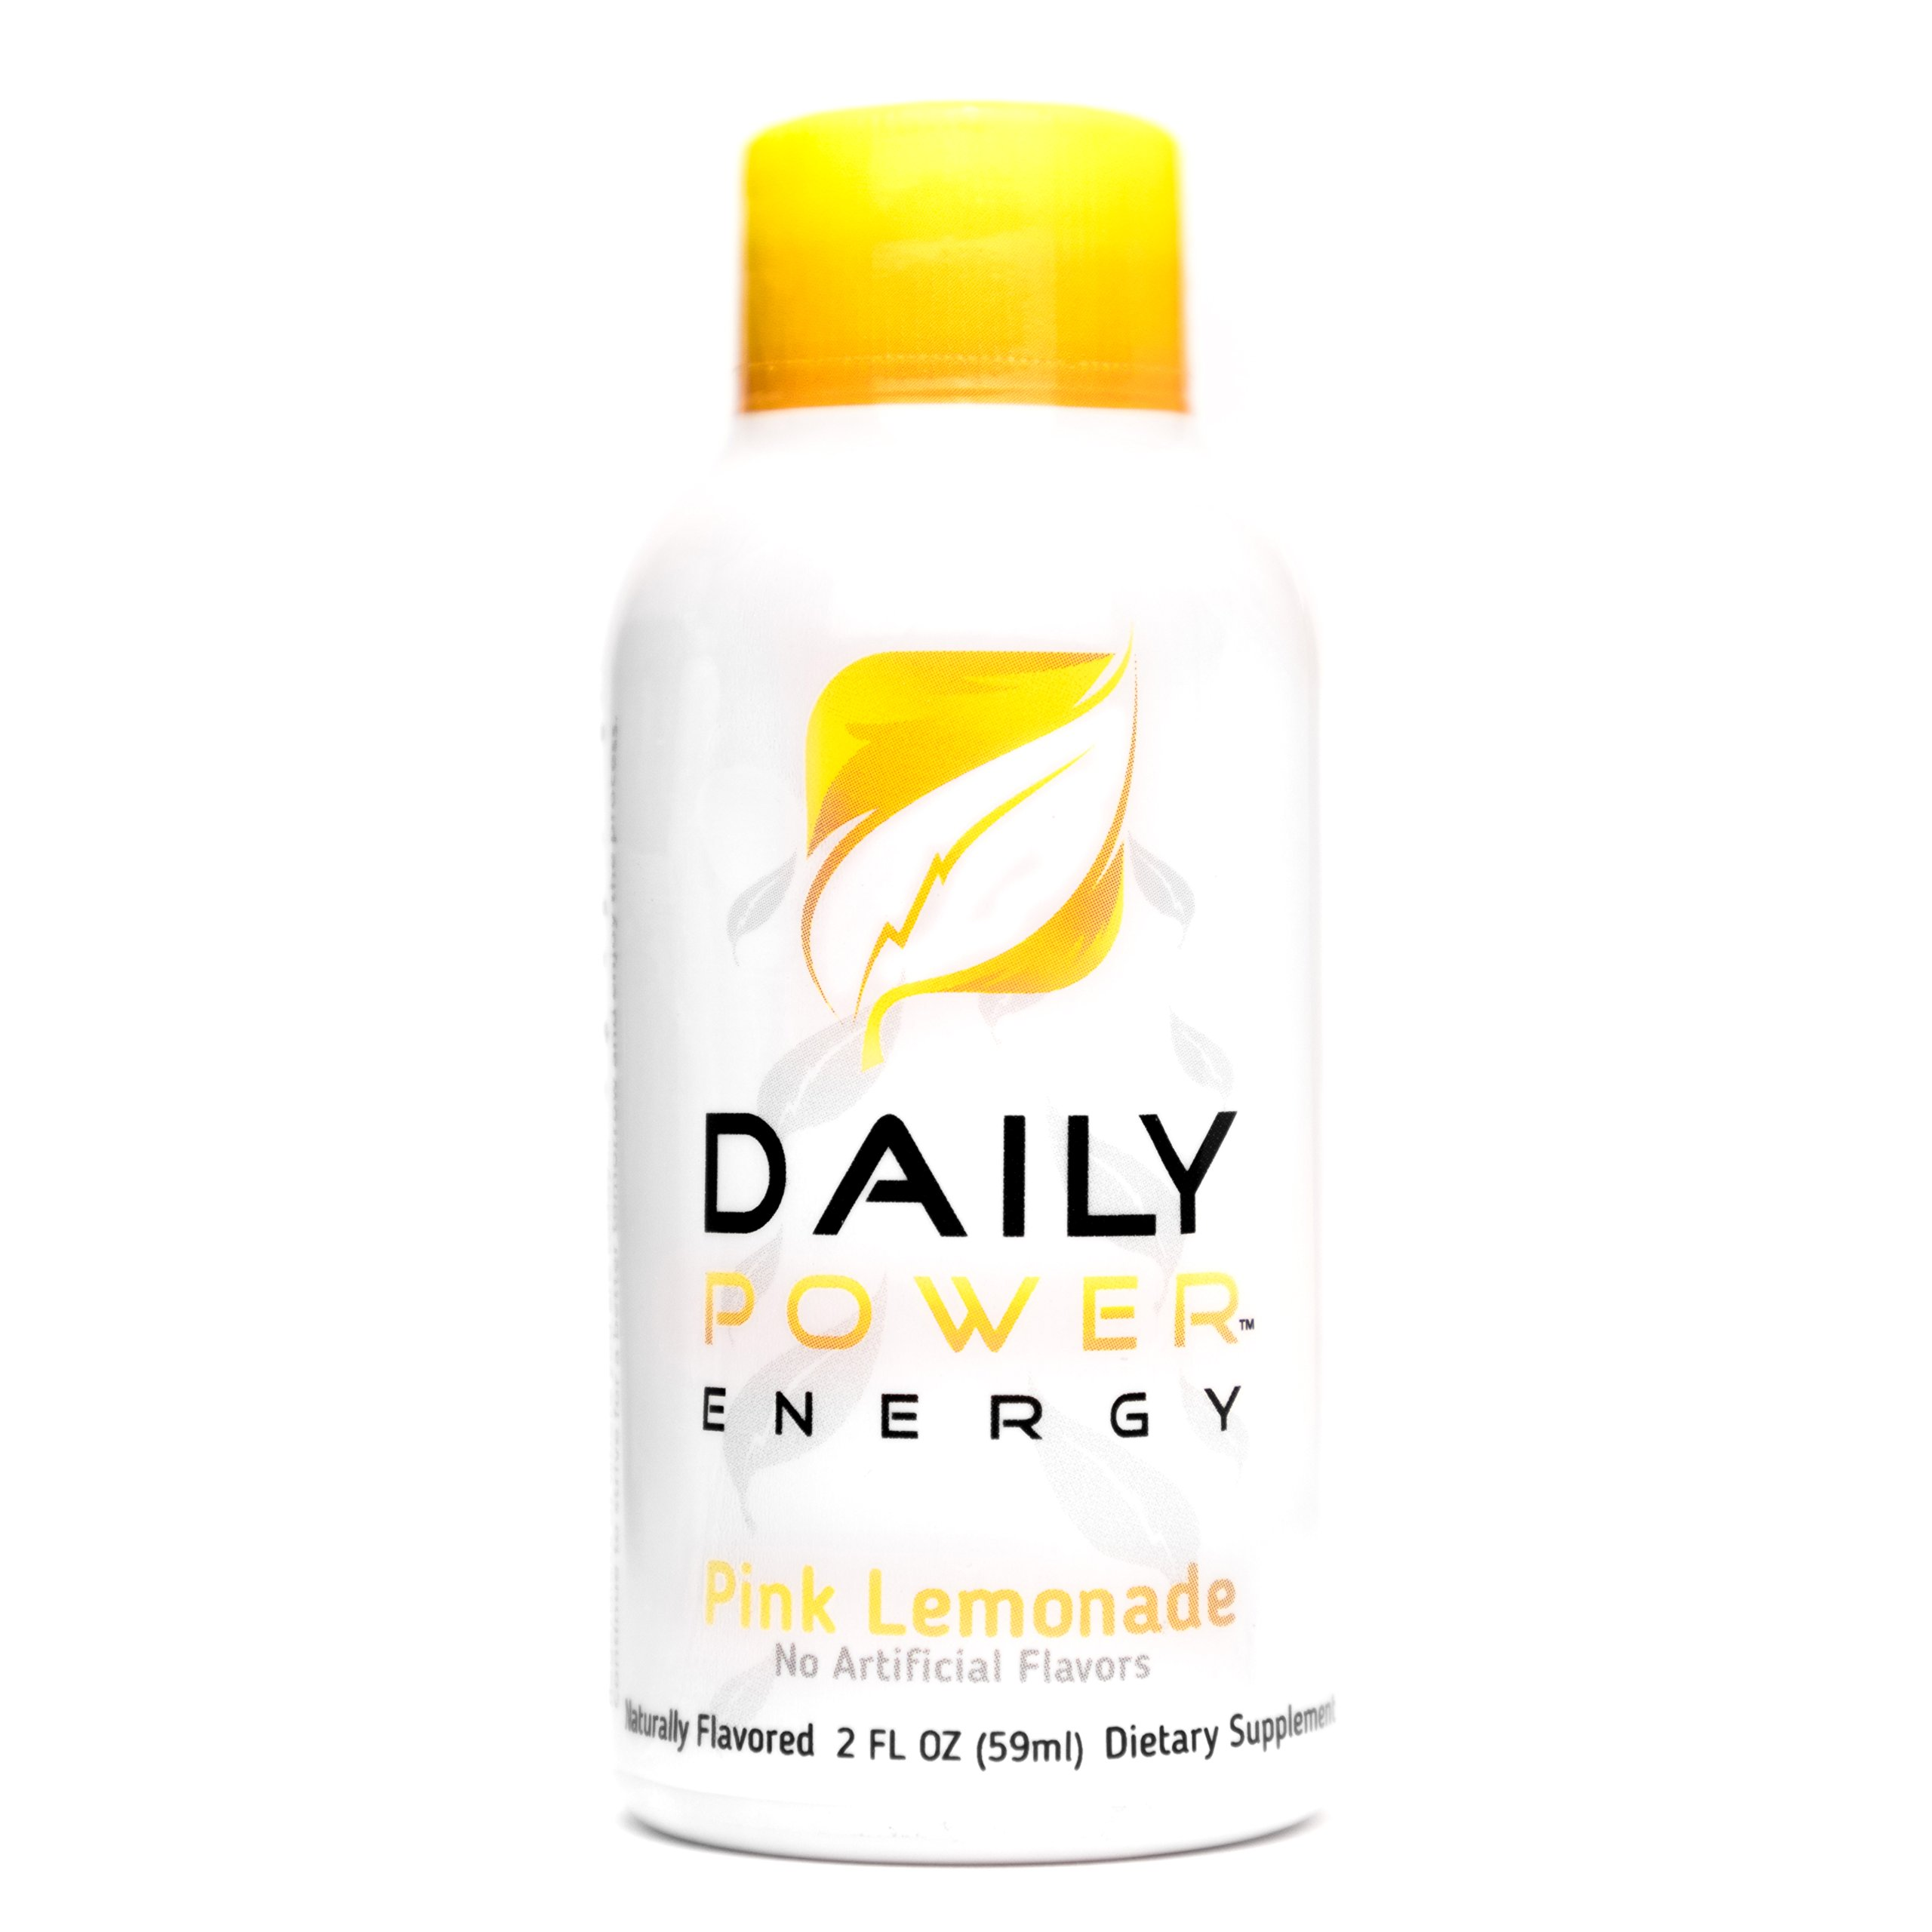 DailyPower Energy Shot - 220mg of Natural Caffeine - 12 Count (Pink Lemonade) by DailyPower